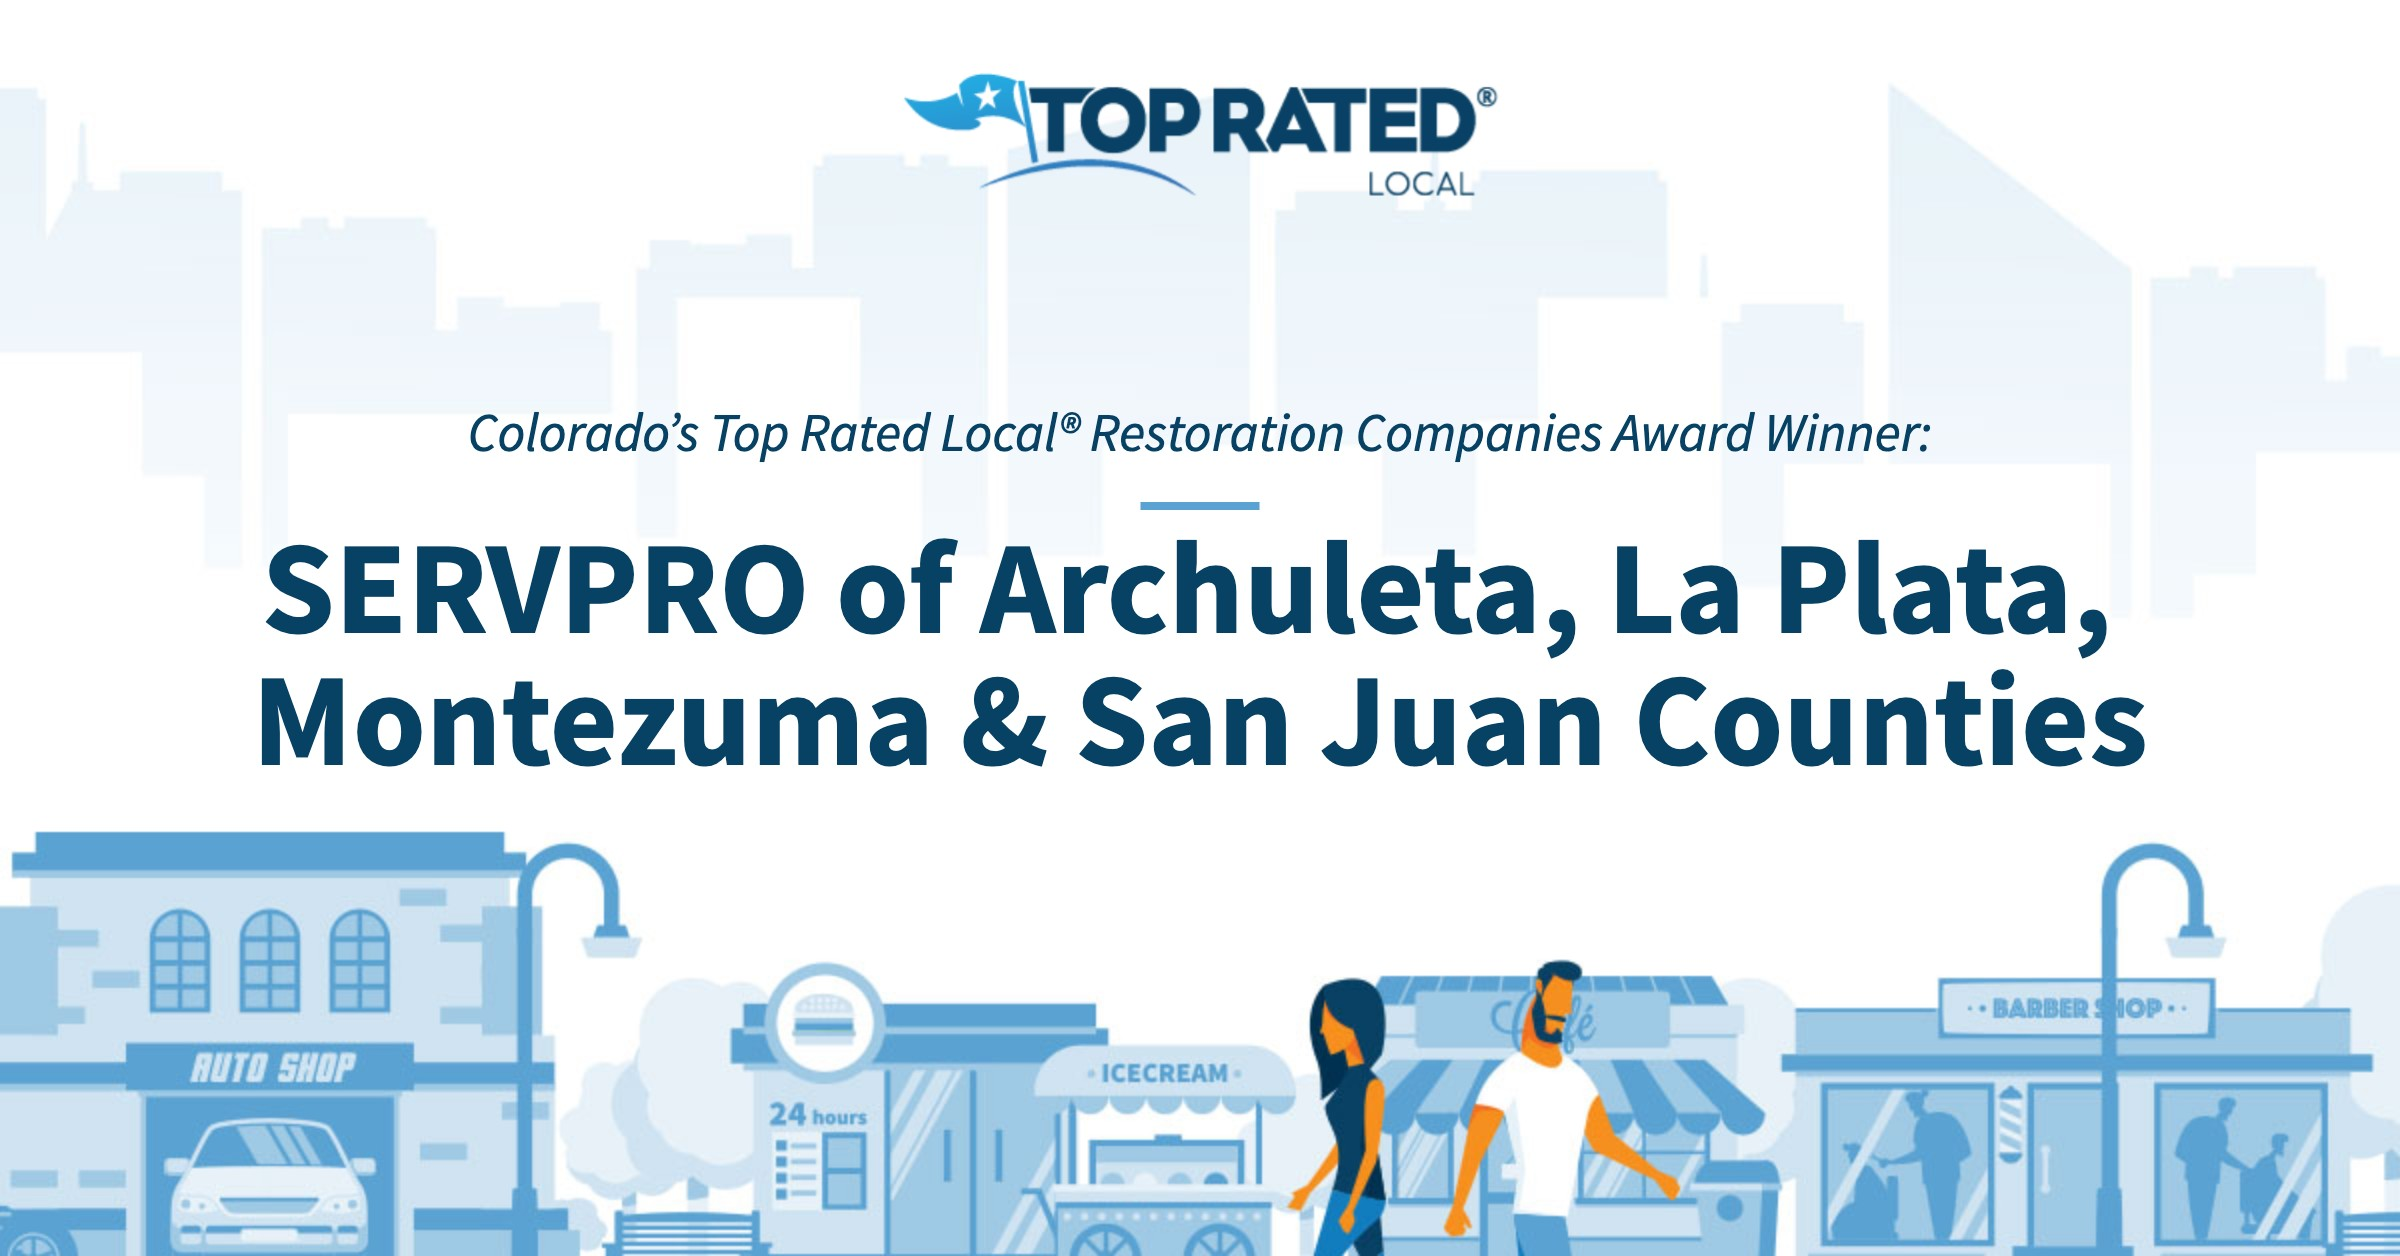 Colorado's Top Rated Local® Restoration Companies Award Winner: SERVPRO of Archuleta, La Plata, Montezuma & San Juan Counties